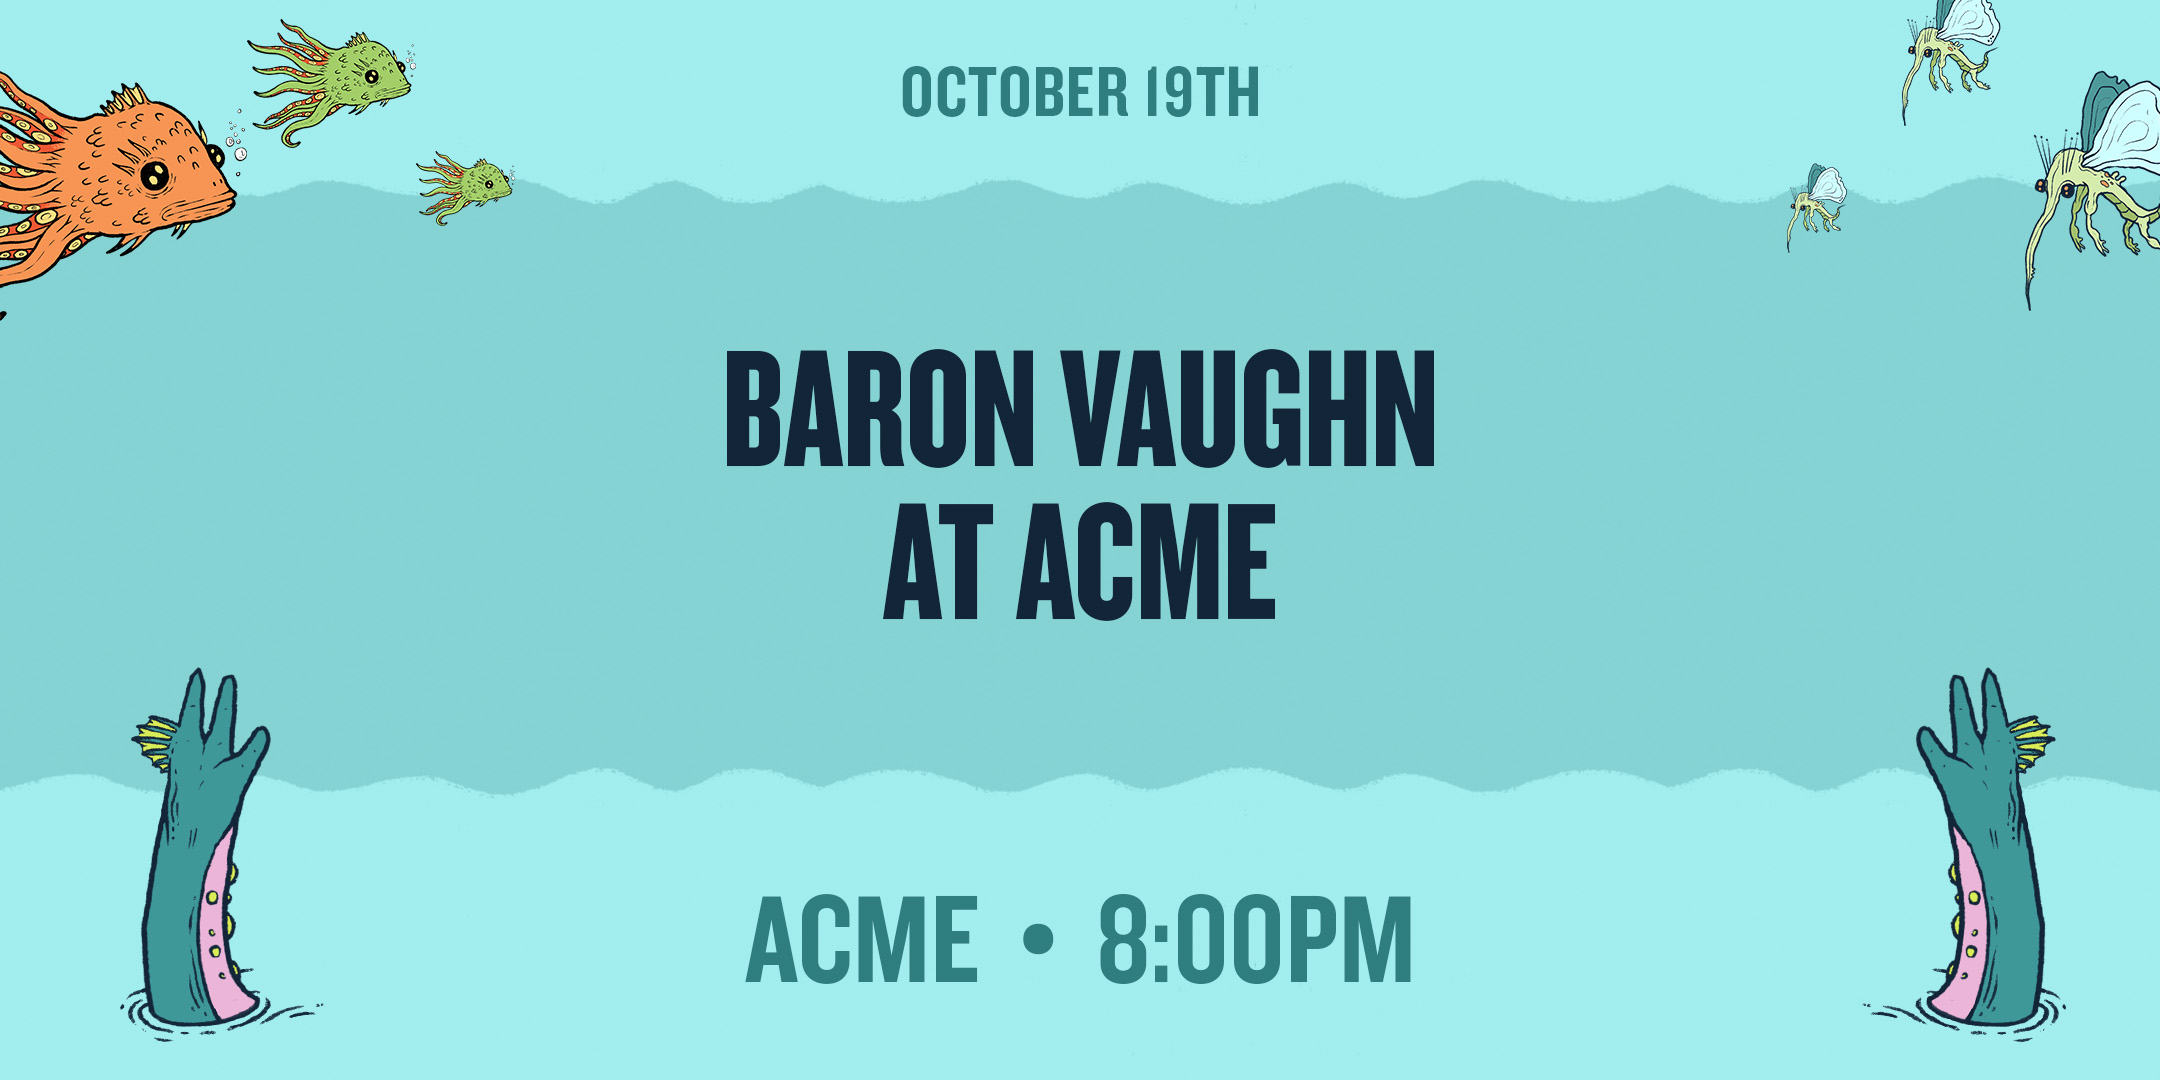 OCT19-Baron Vaughn.jpg